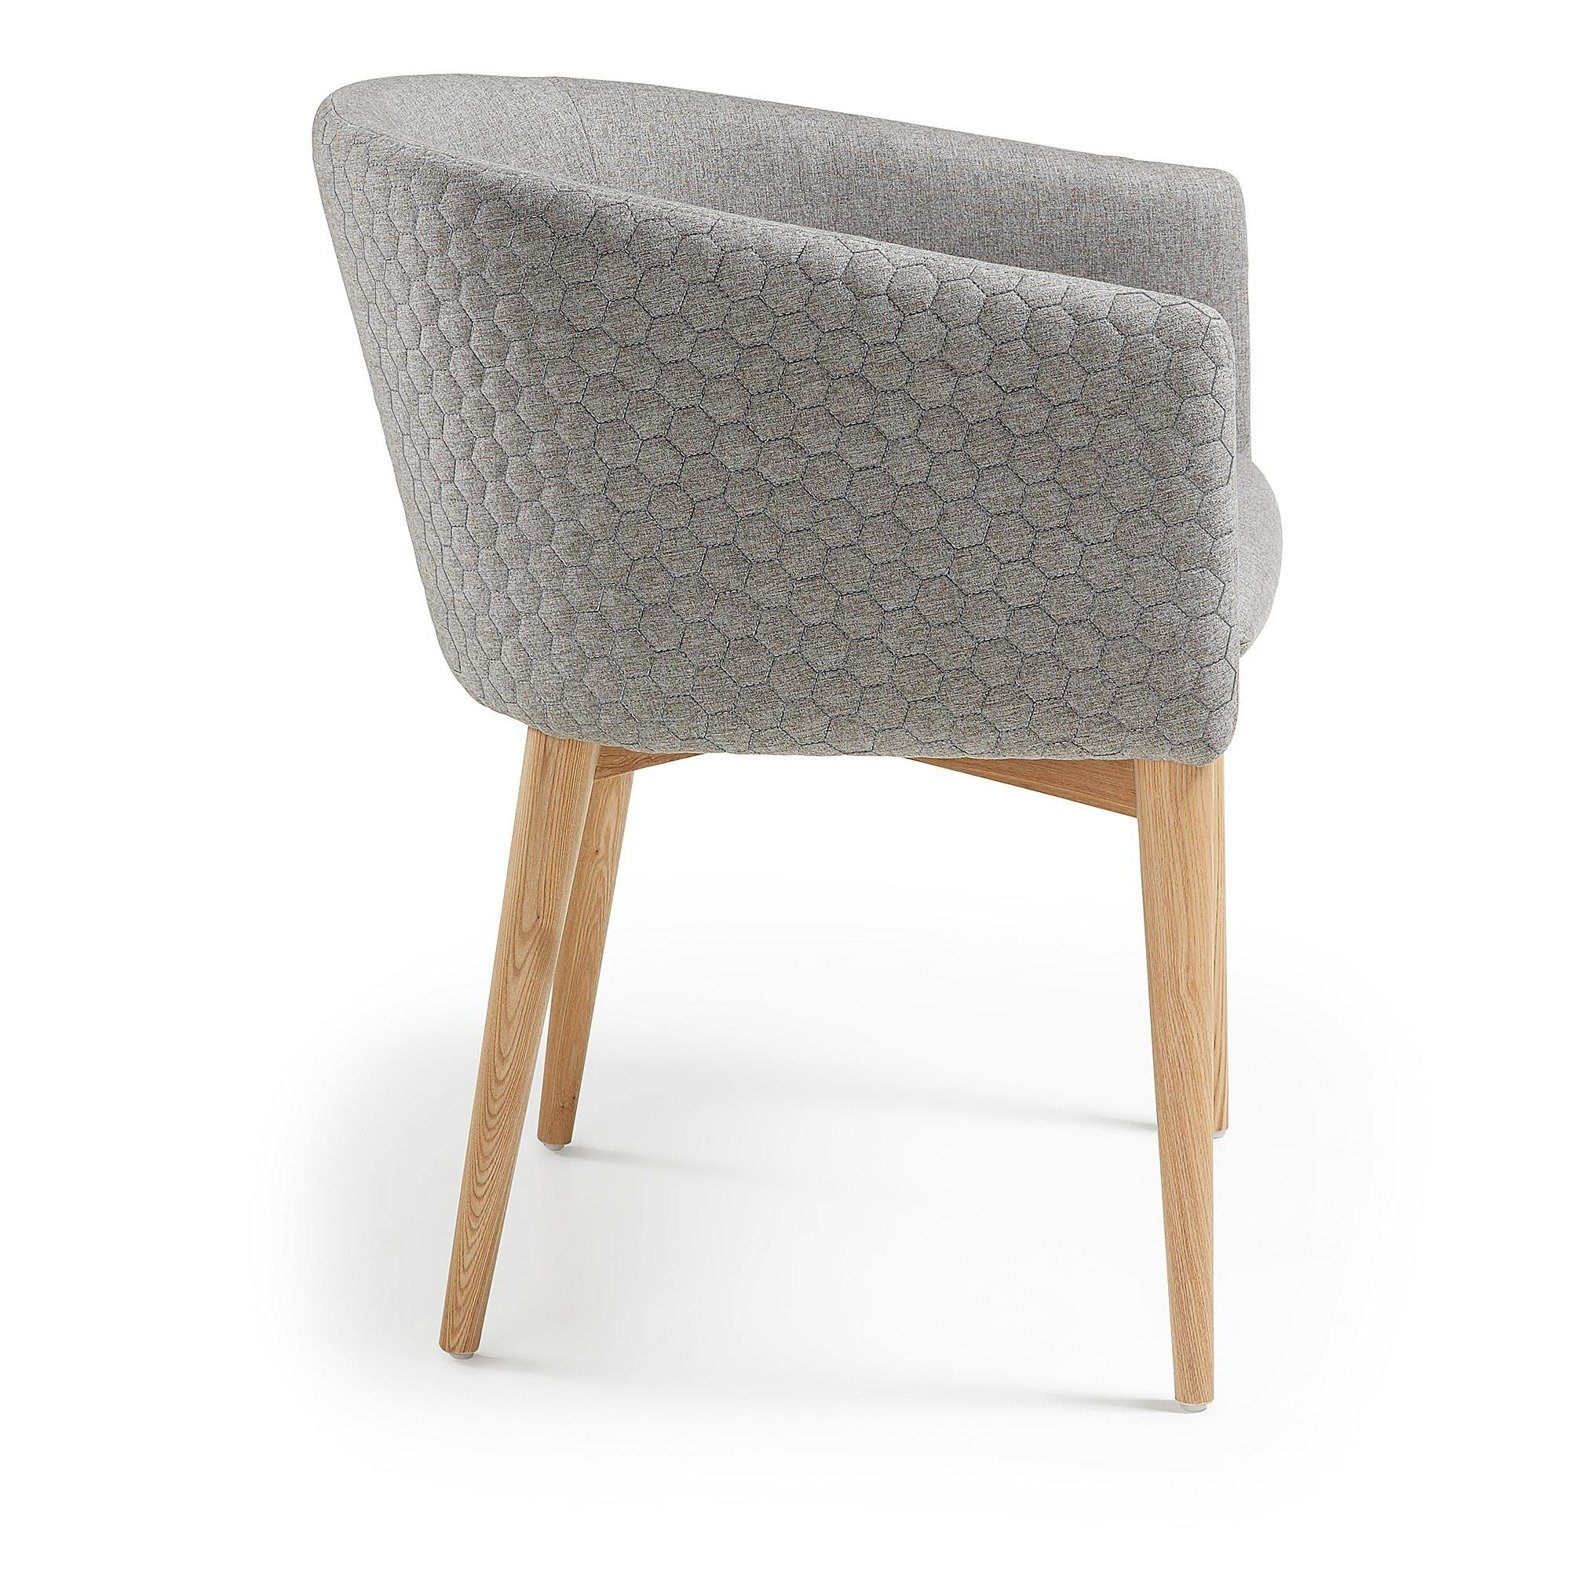 JOSE Armchair natural wood quilted fabric light gray